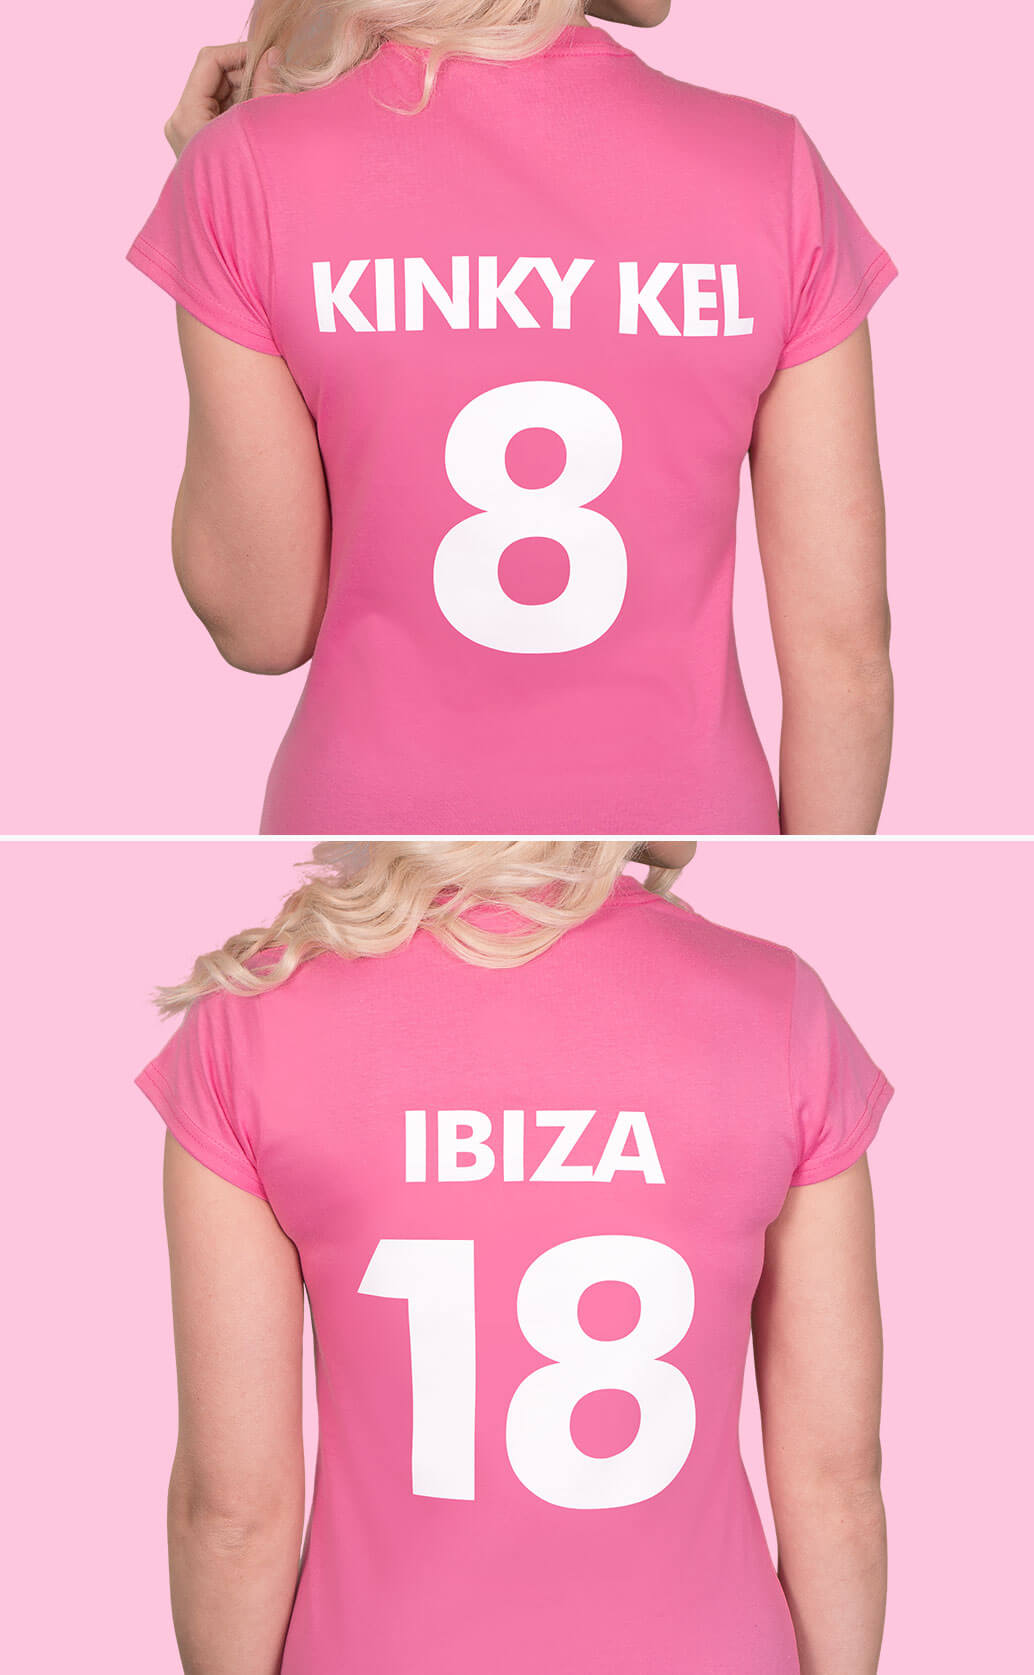 Two medium close-up shots of models wearing azalea pink lady fit t shirts. Photographed from behind to show back name and number prints in white. First shot has 'Kinky Kel' and the number 8, second shot has 'Ibiza 18'. Light pink background